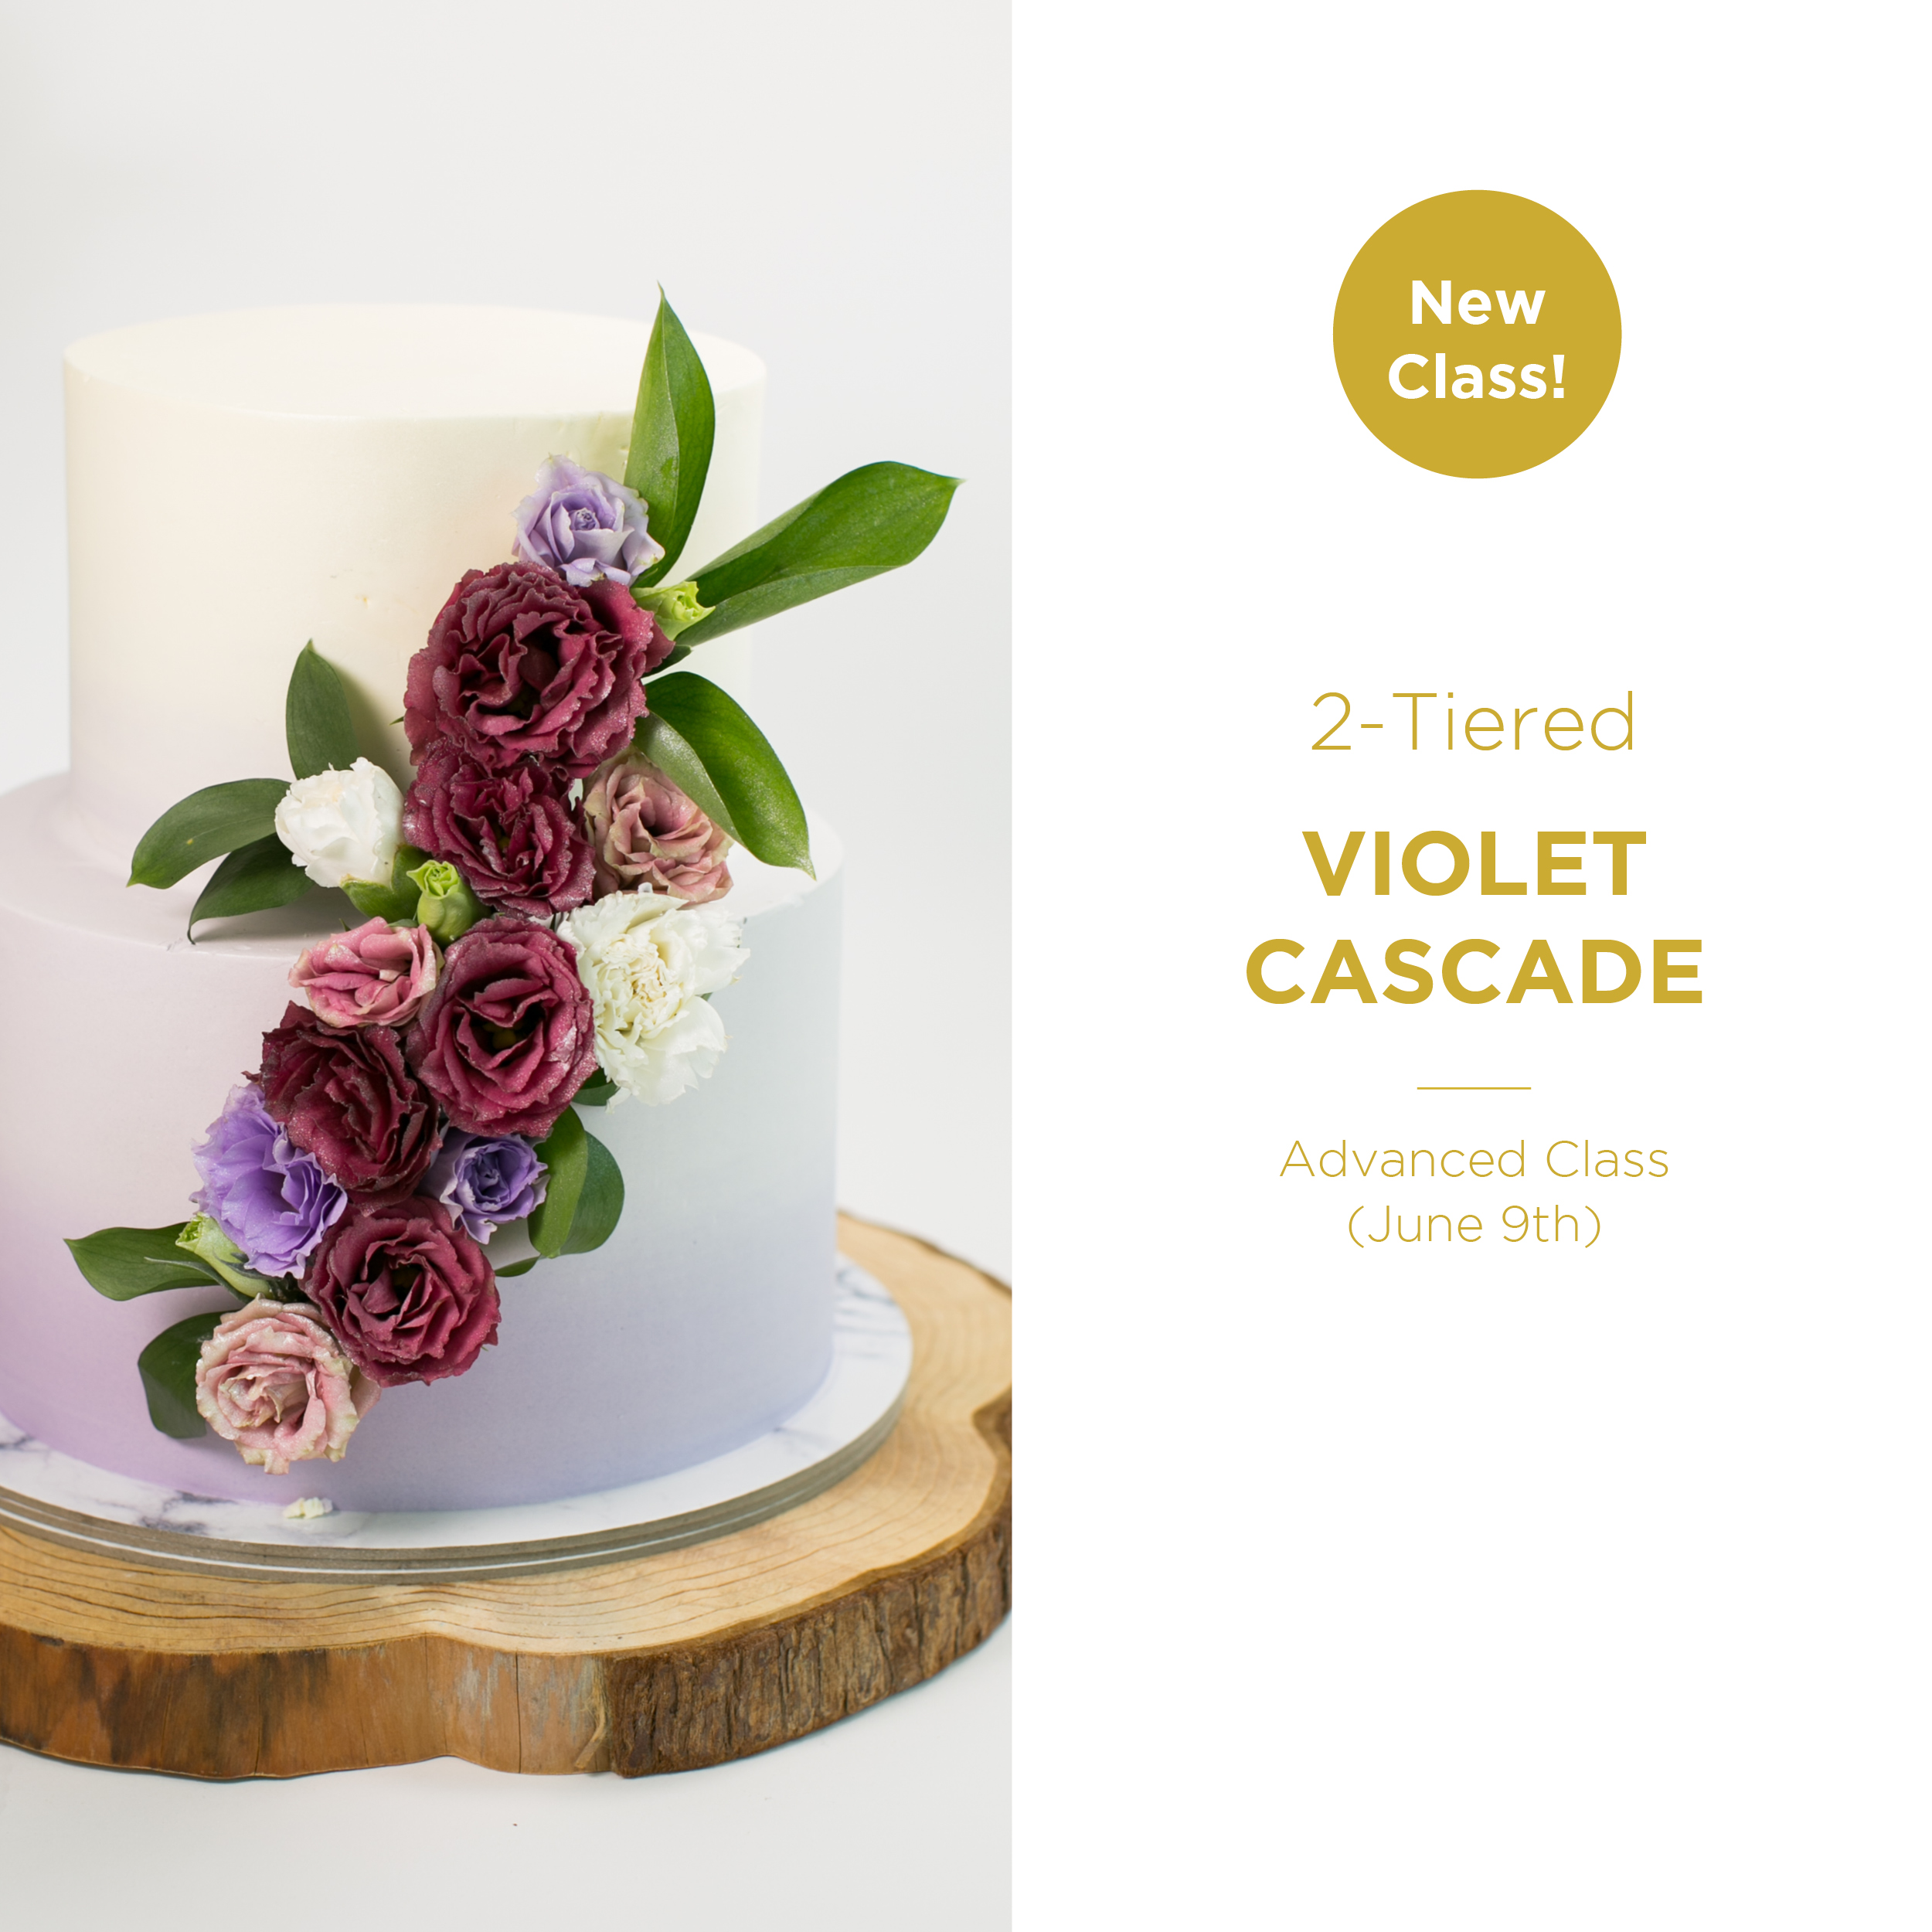 Baking And Cake Decorating Classes In Singapore